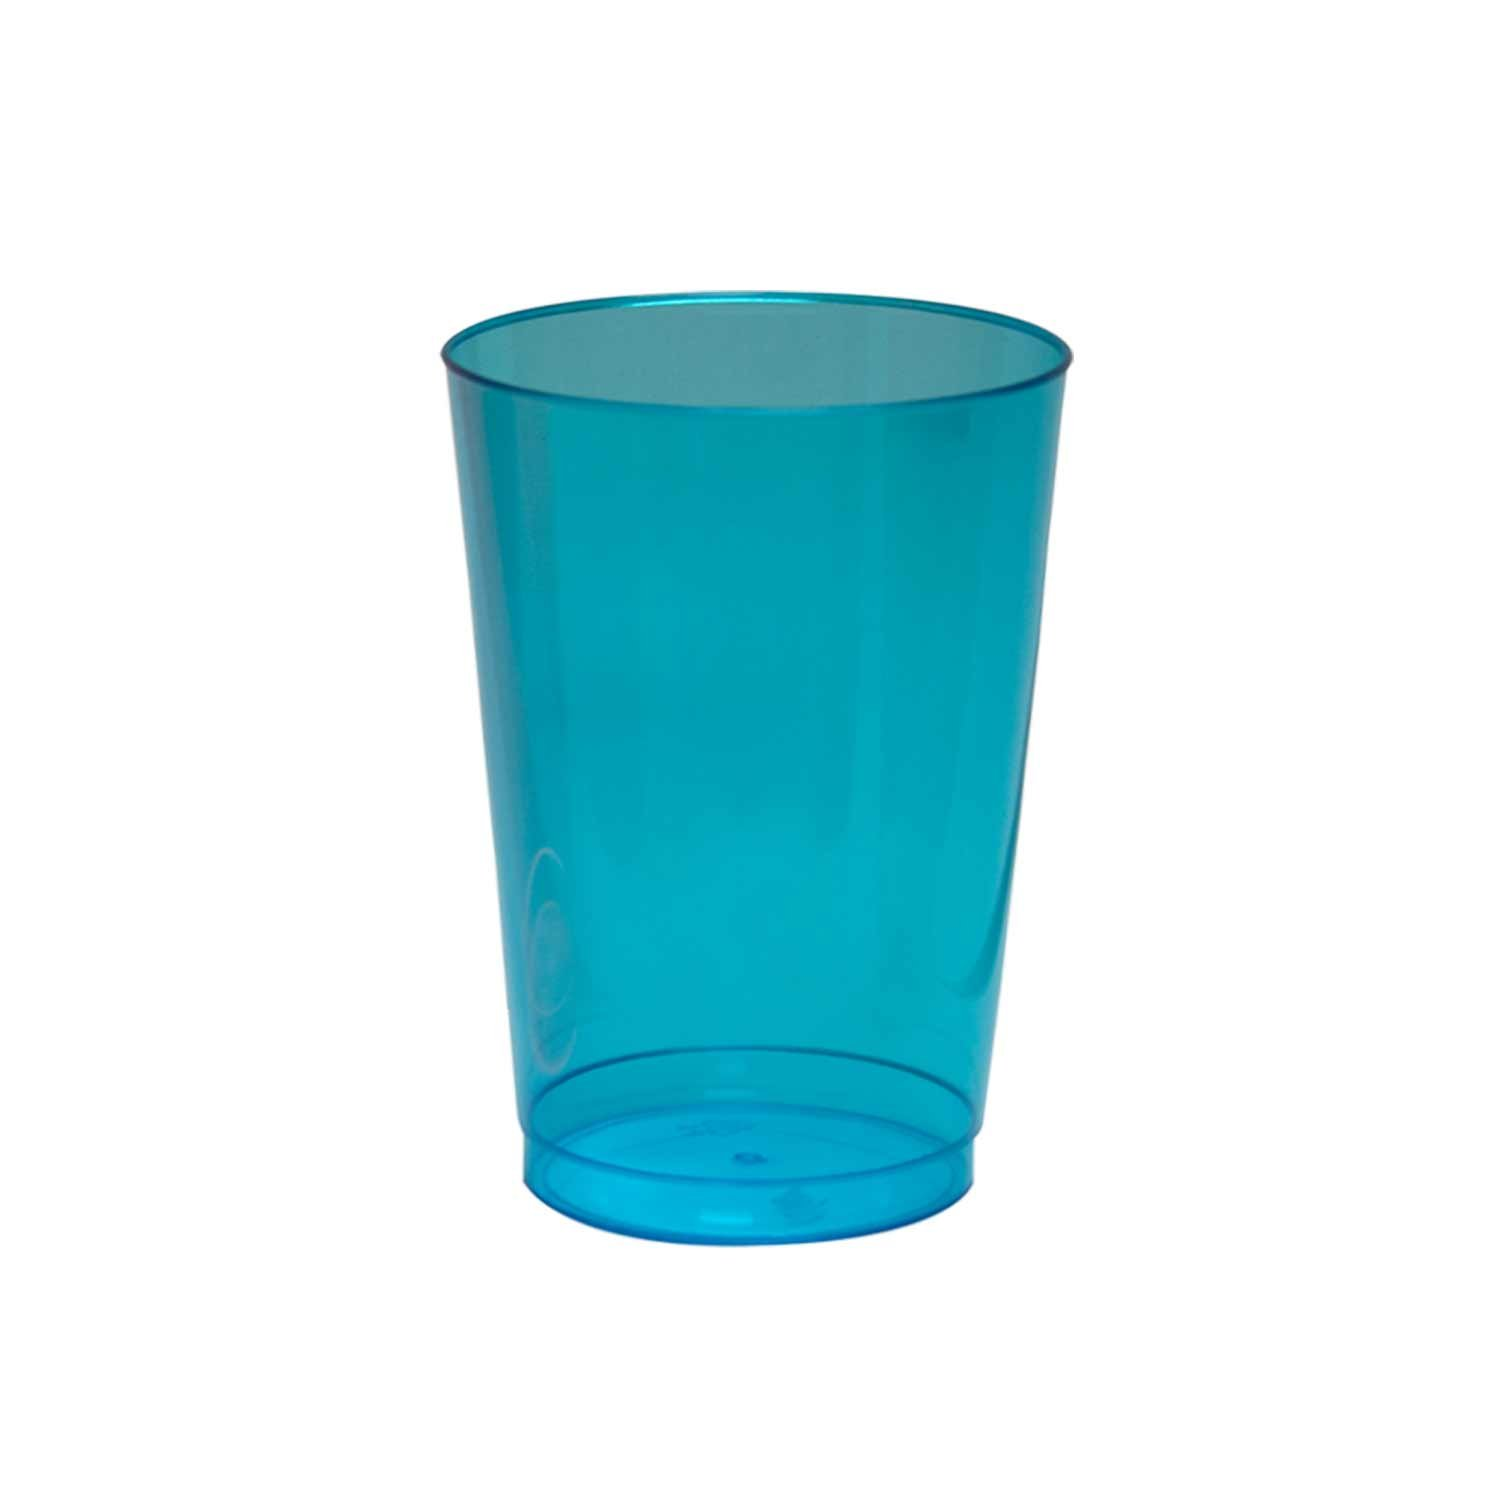 Party Essentials Hard Plastic Party Cups/Tumblers, 10-Ounce, Mardi Gras Mix, 50-Count N105046